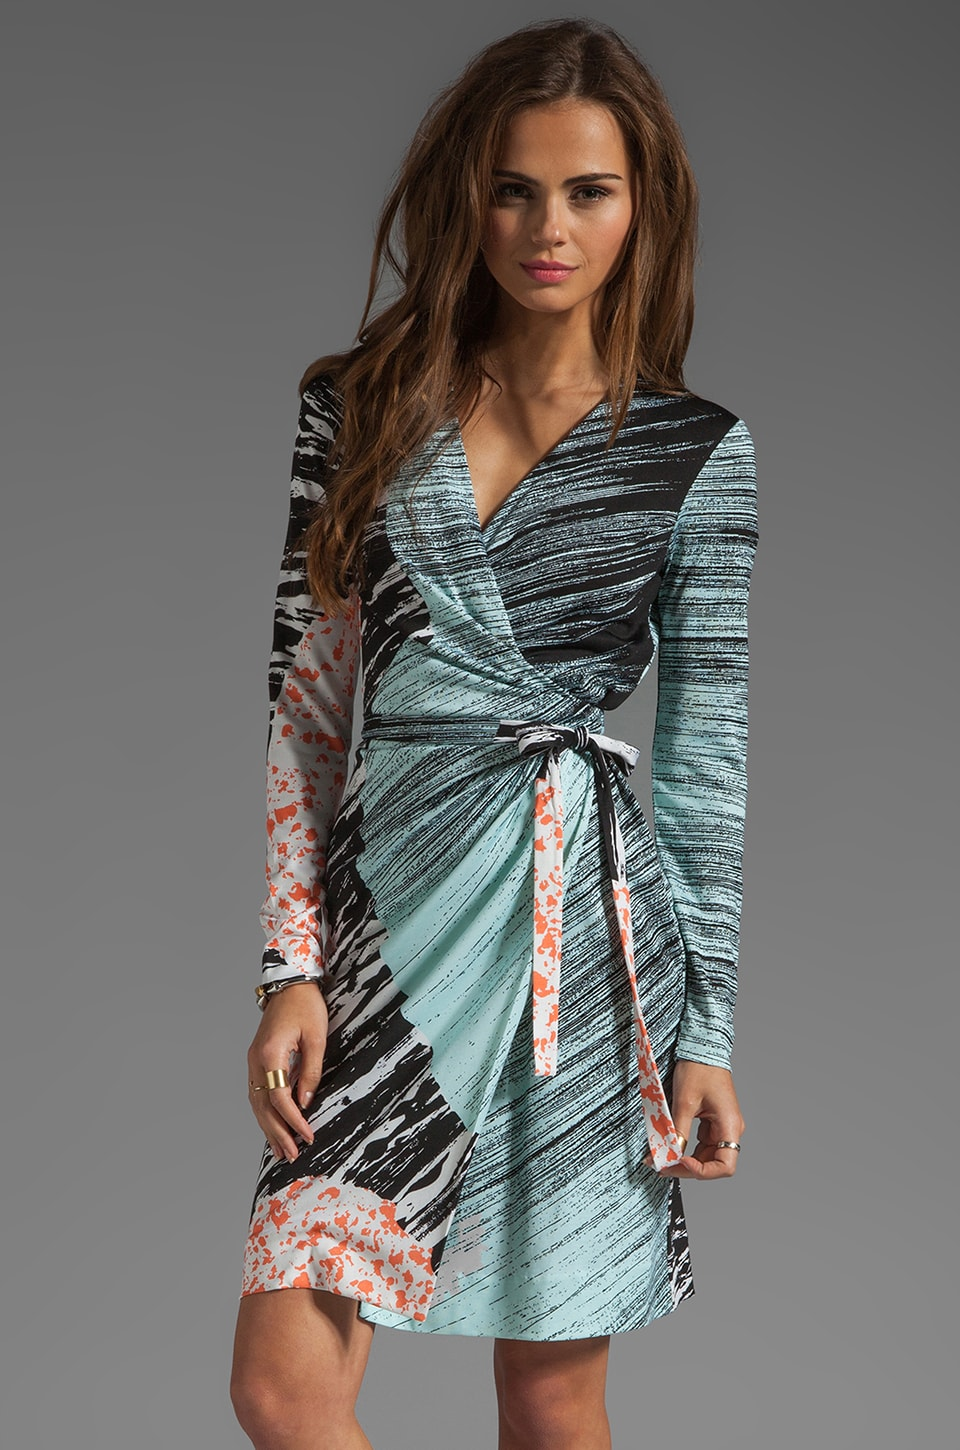 Diane von Furstenberg Valencia Dress in Rockscape